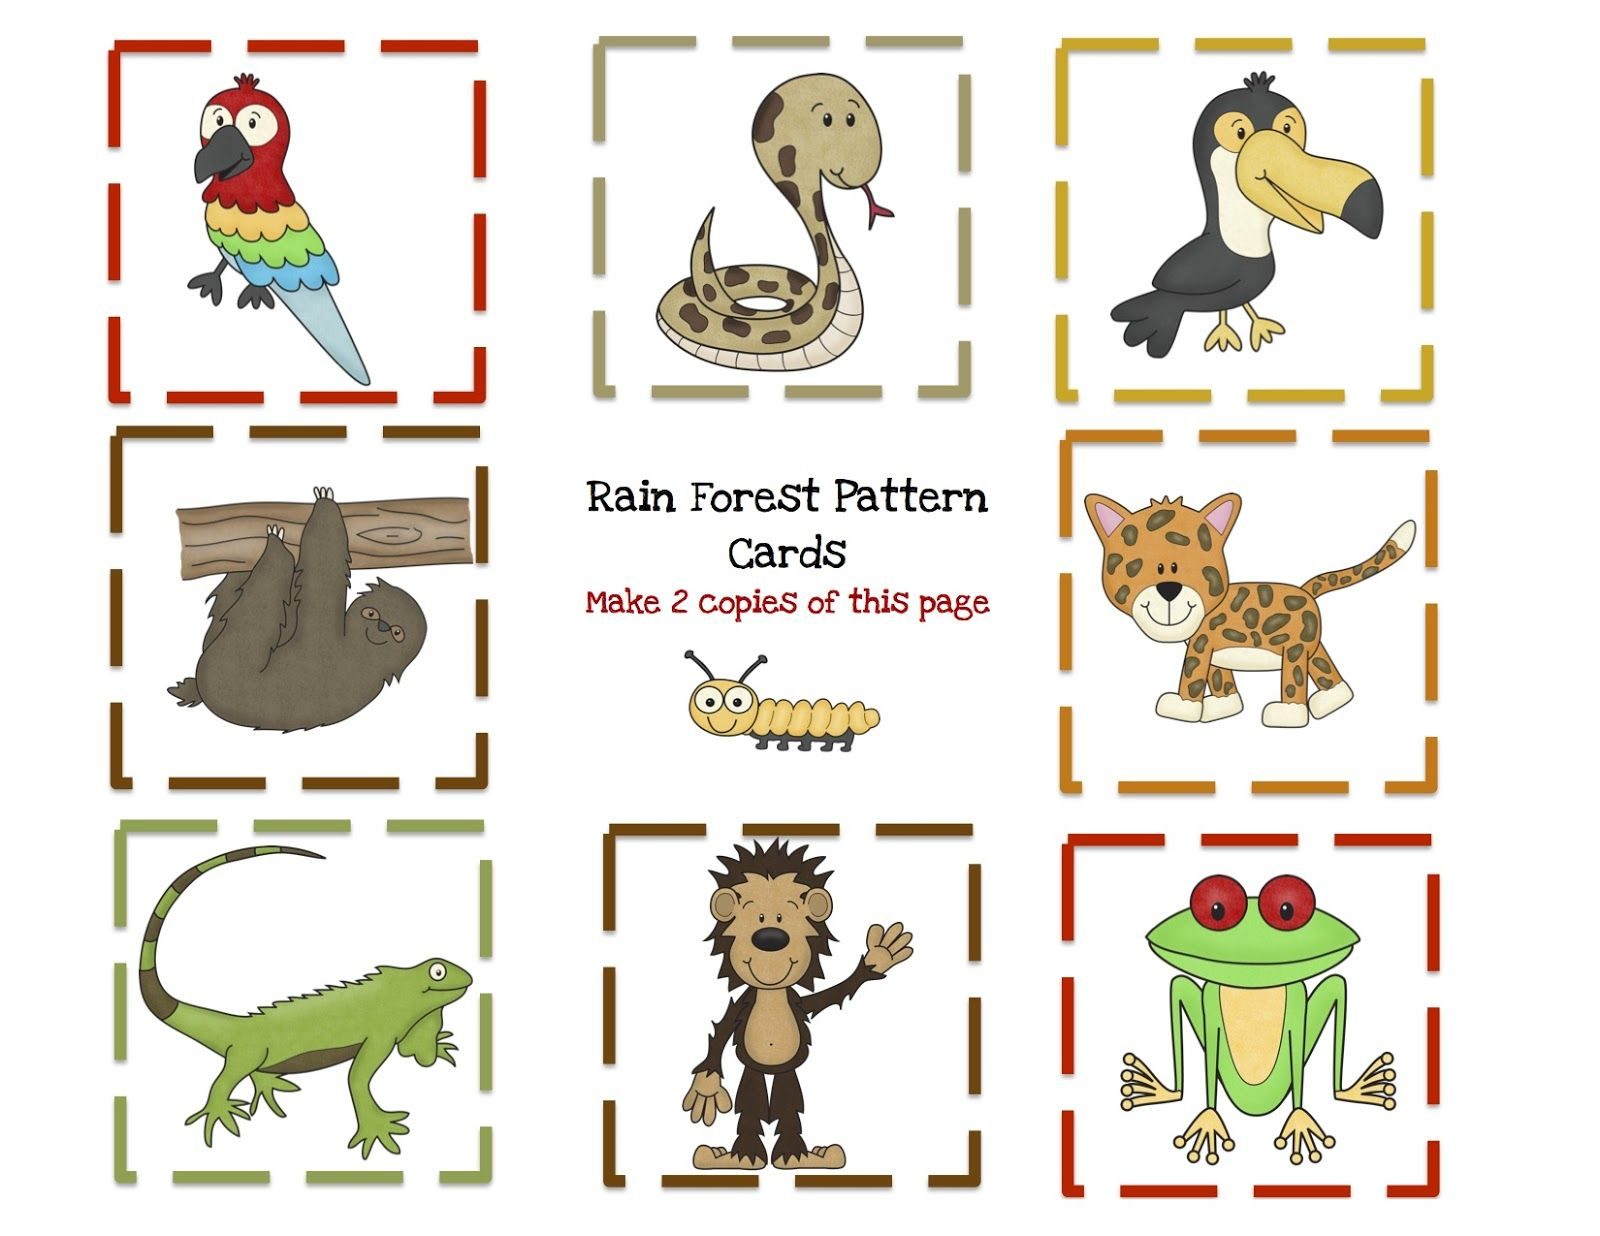 preschool printables rain forest animal printable preschool rainforest animals rainforest. Black Bedroom Furniture Sets. Home Design Ideas